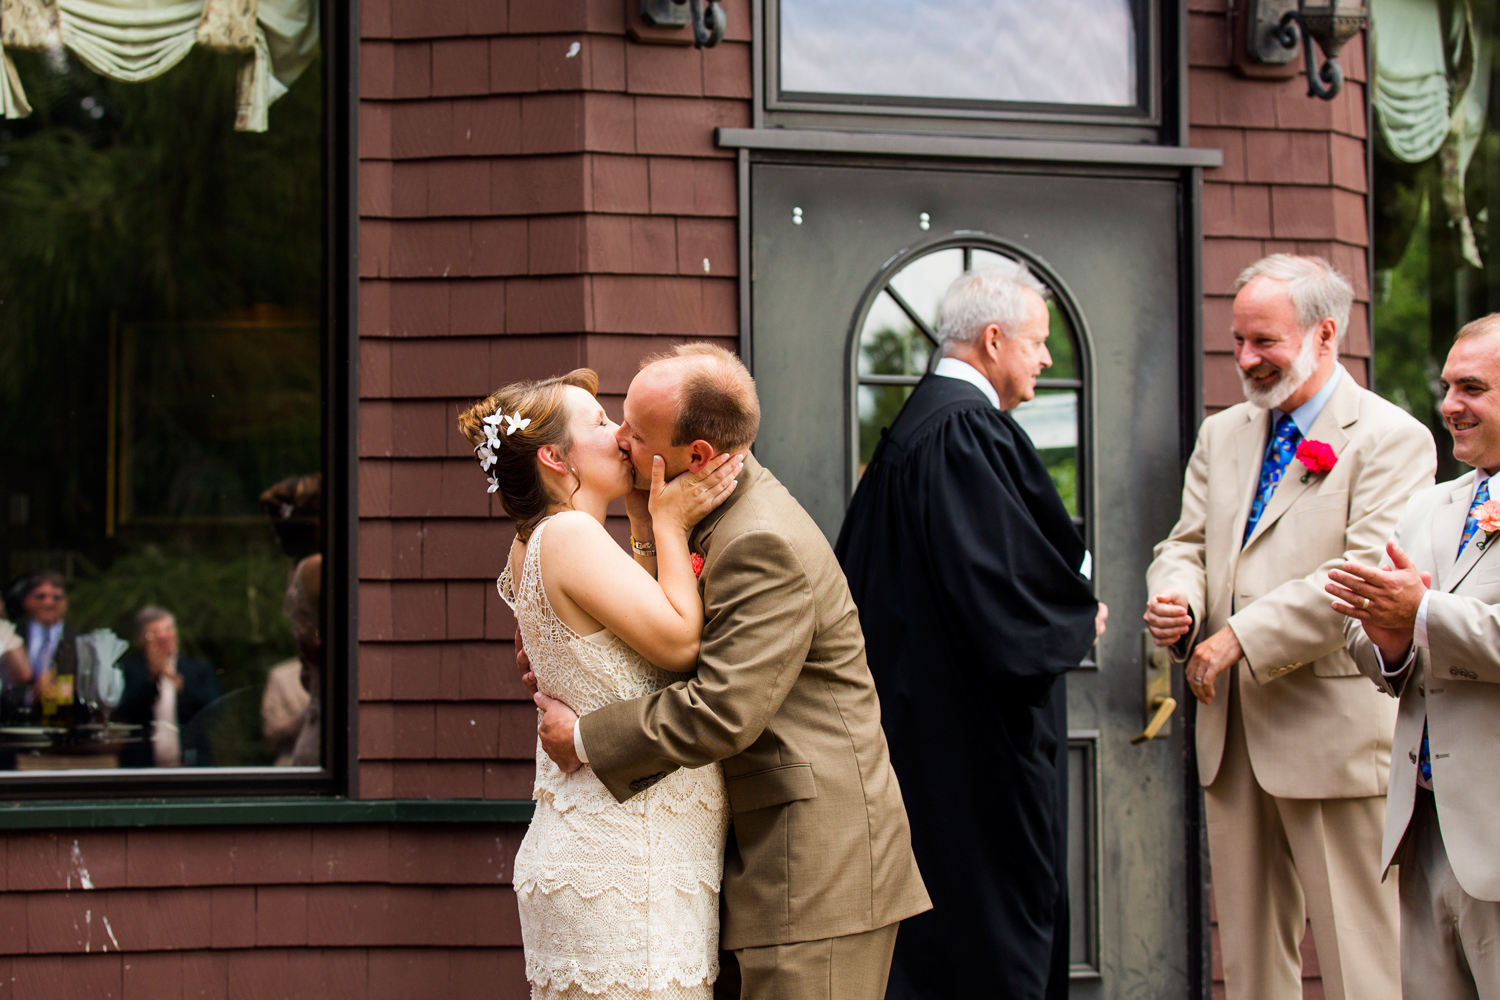 Wedding ceremony at the Brewster Inn